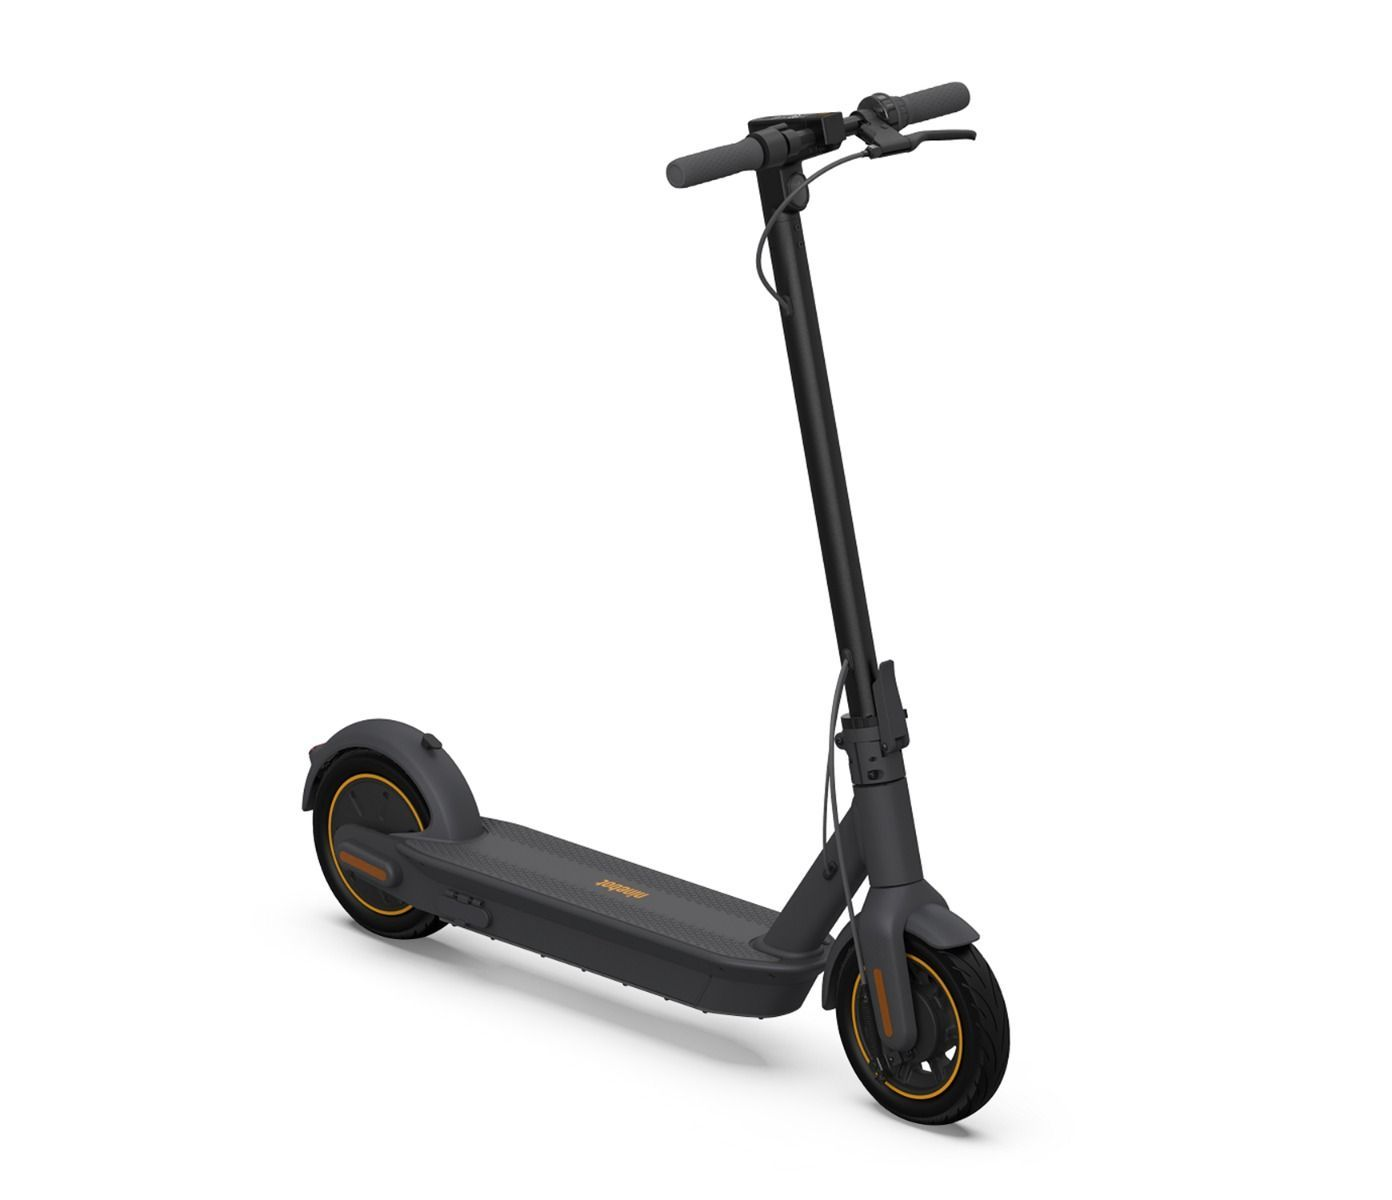 segway ninebot max electric scooter review thumbnail